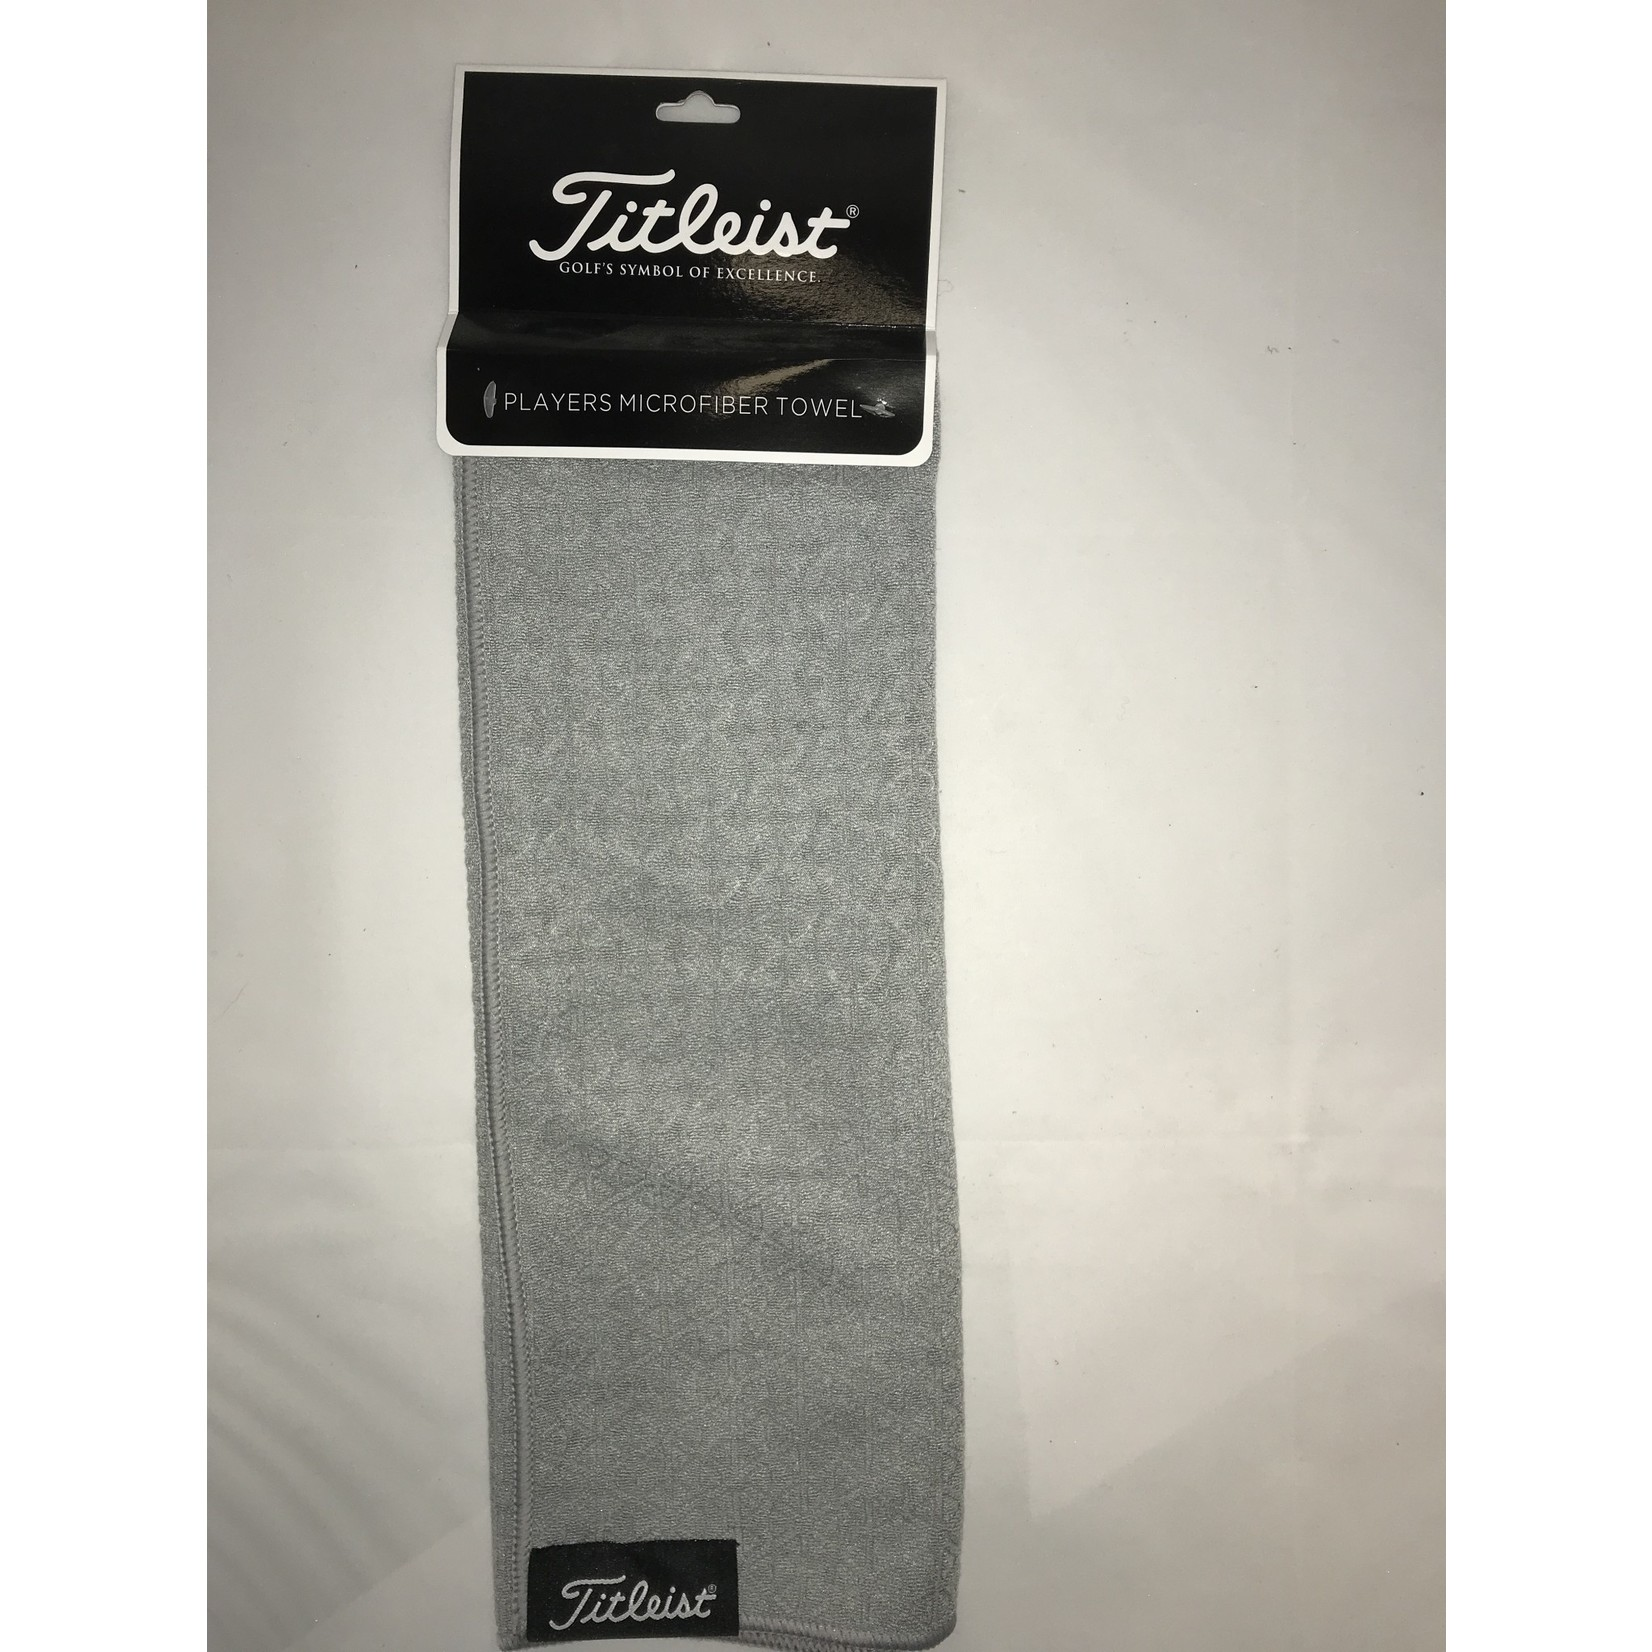 Titleist Titleist Players Microfiber Towel grijs